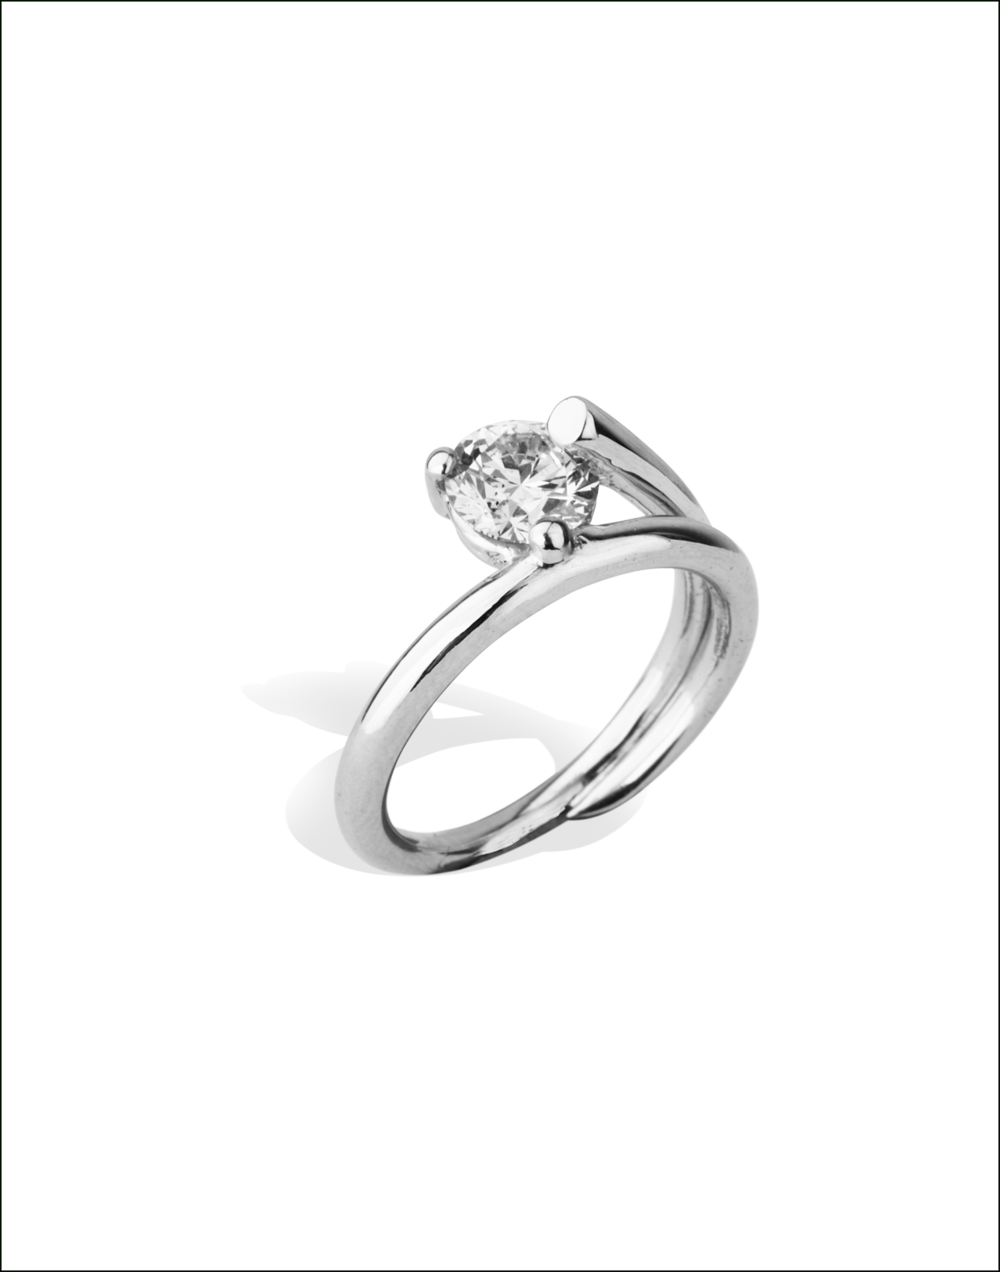 Completedworks-Subverted-Flower-Bridal-Ring-WHITE-GOLD-5-1.png